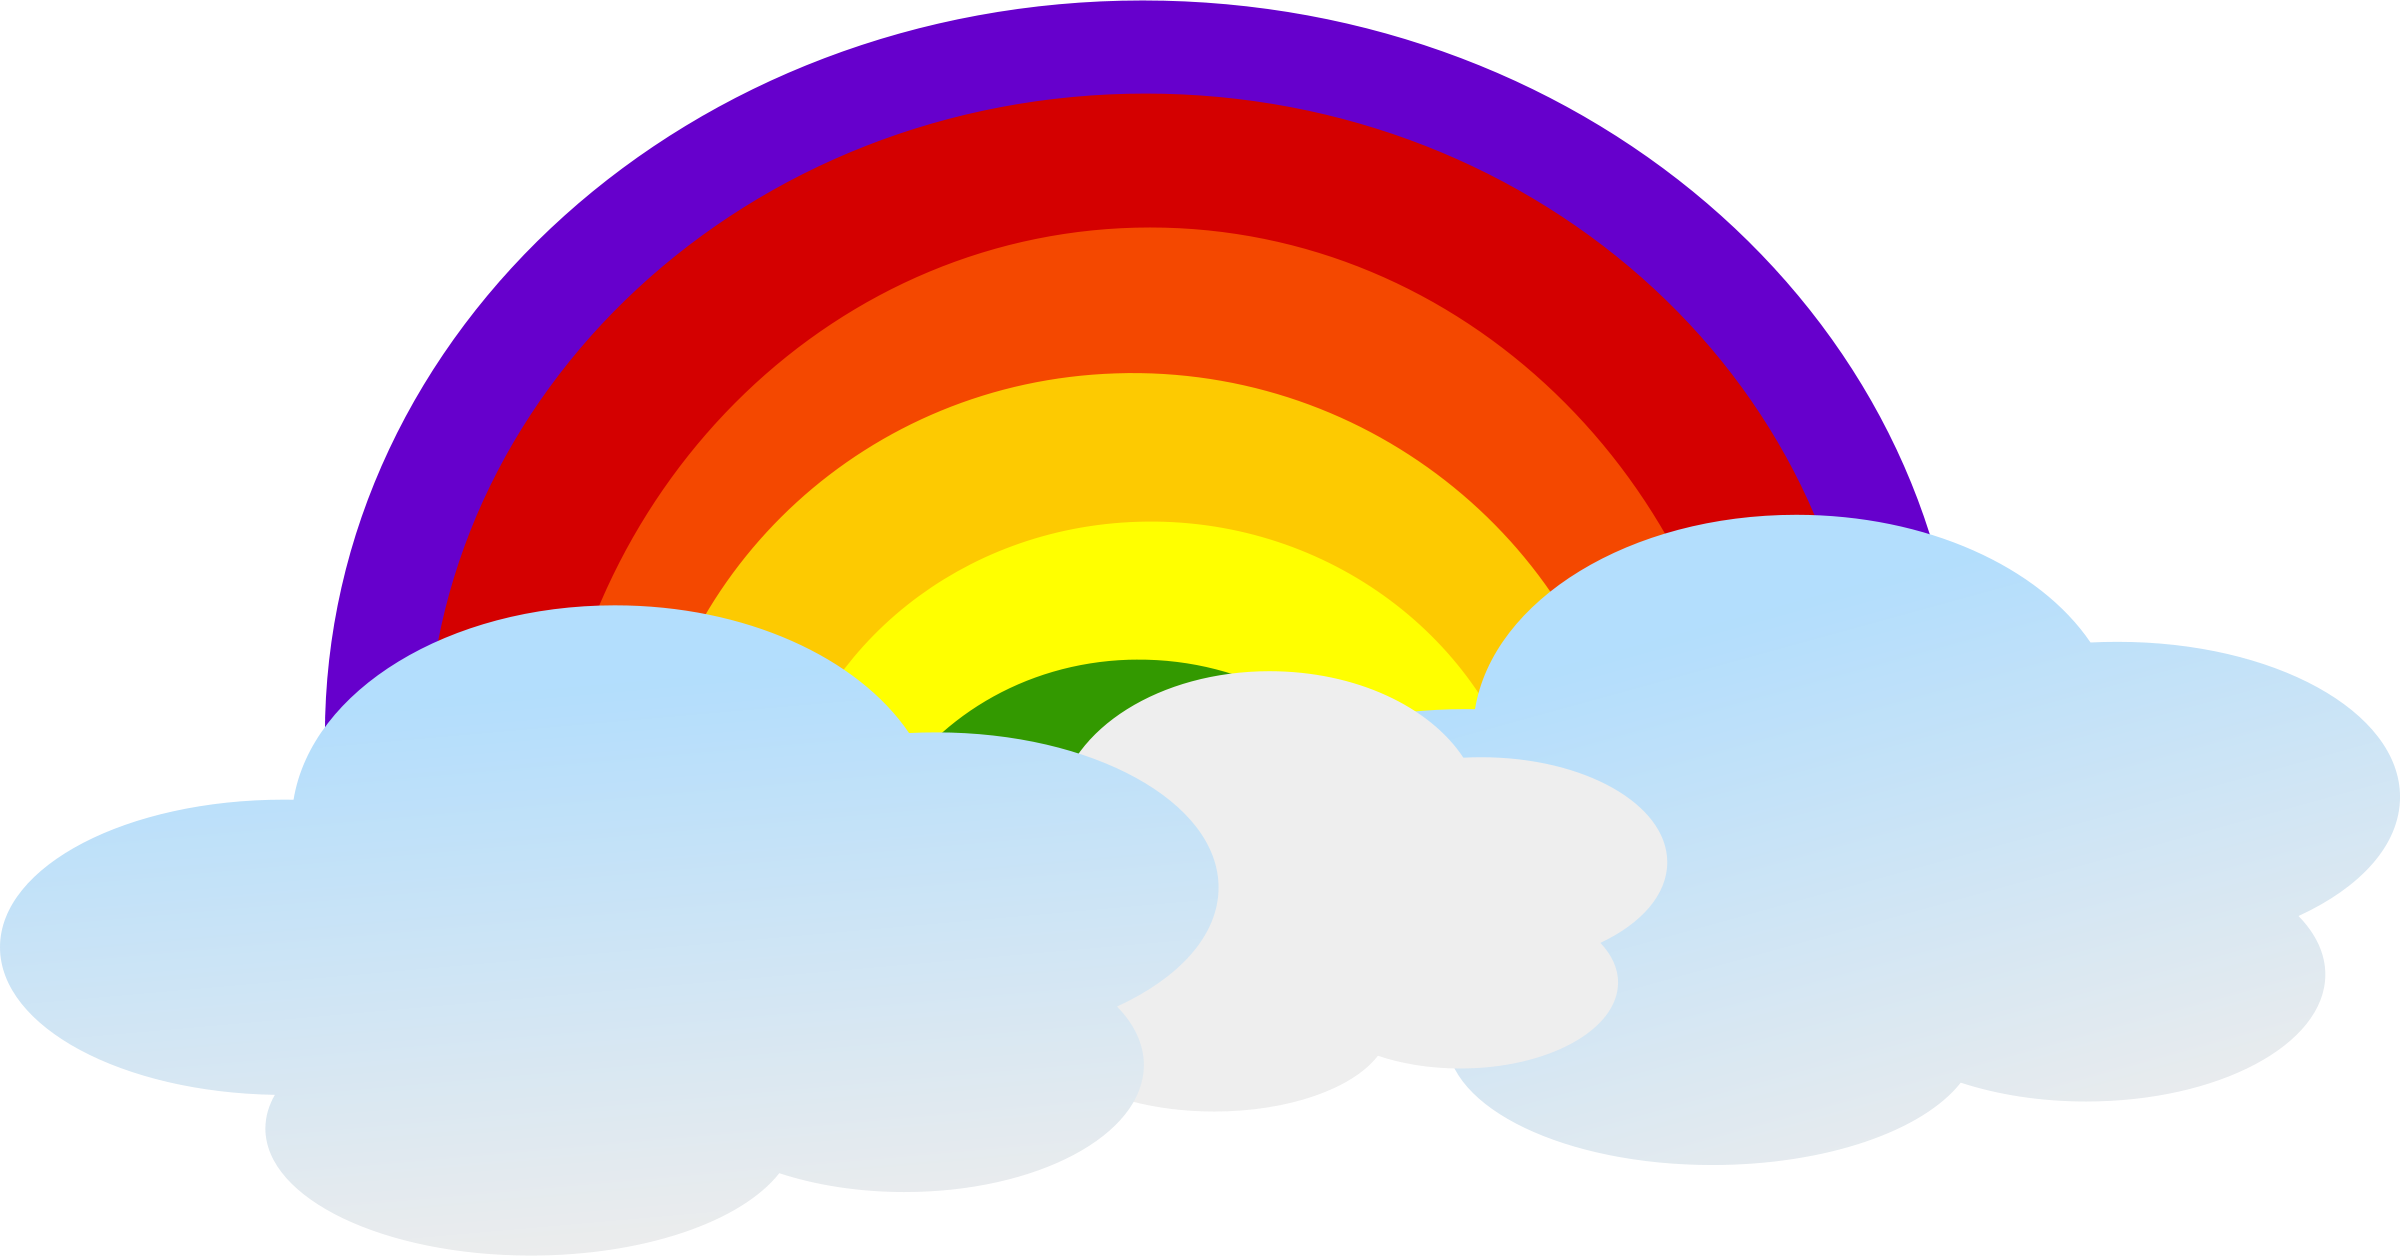 picture library download Rainbow clipart free black and white. Png transparent background cheap